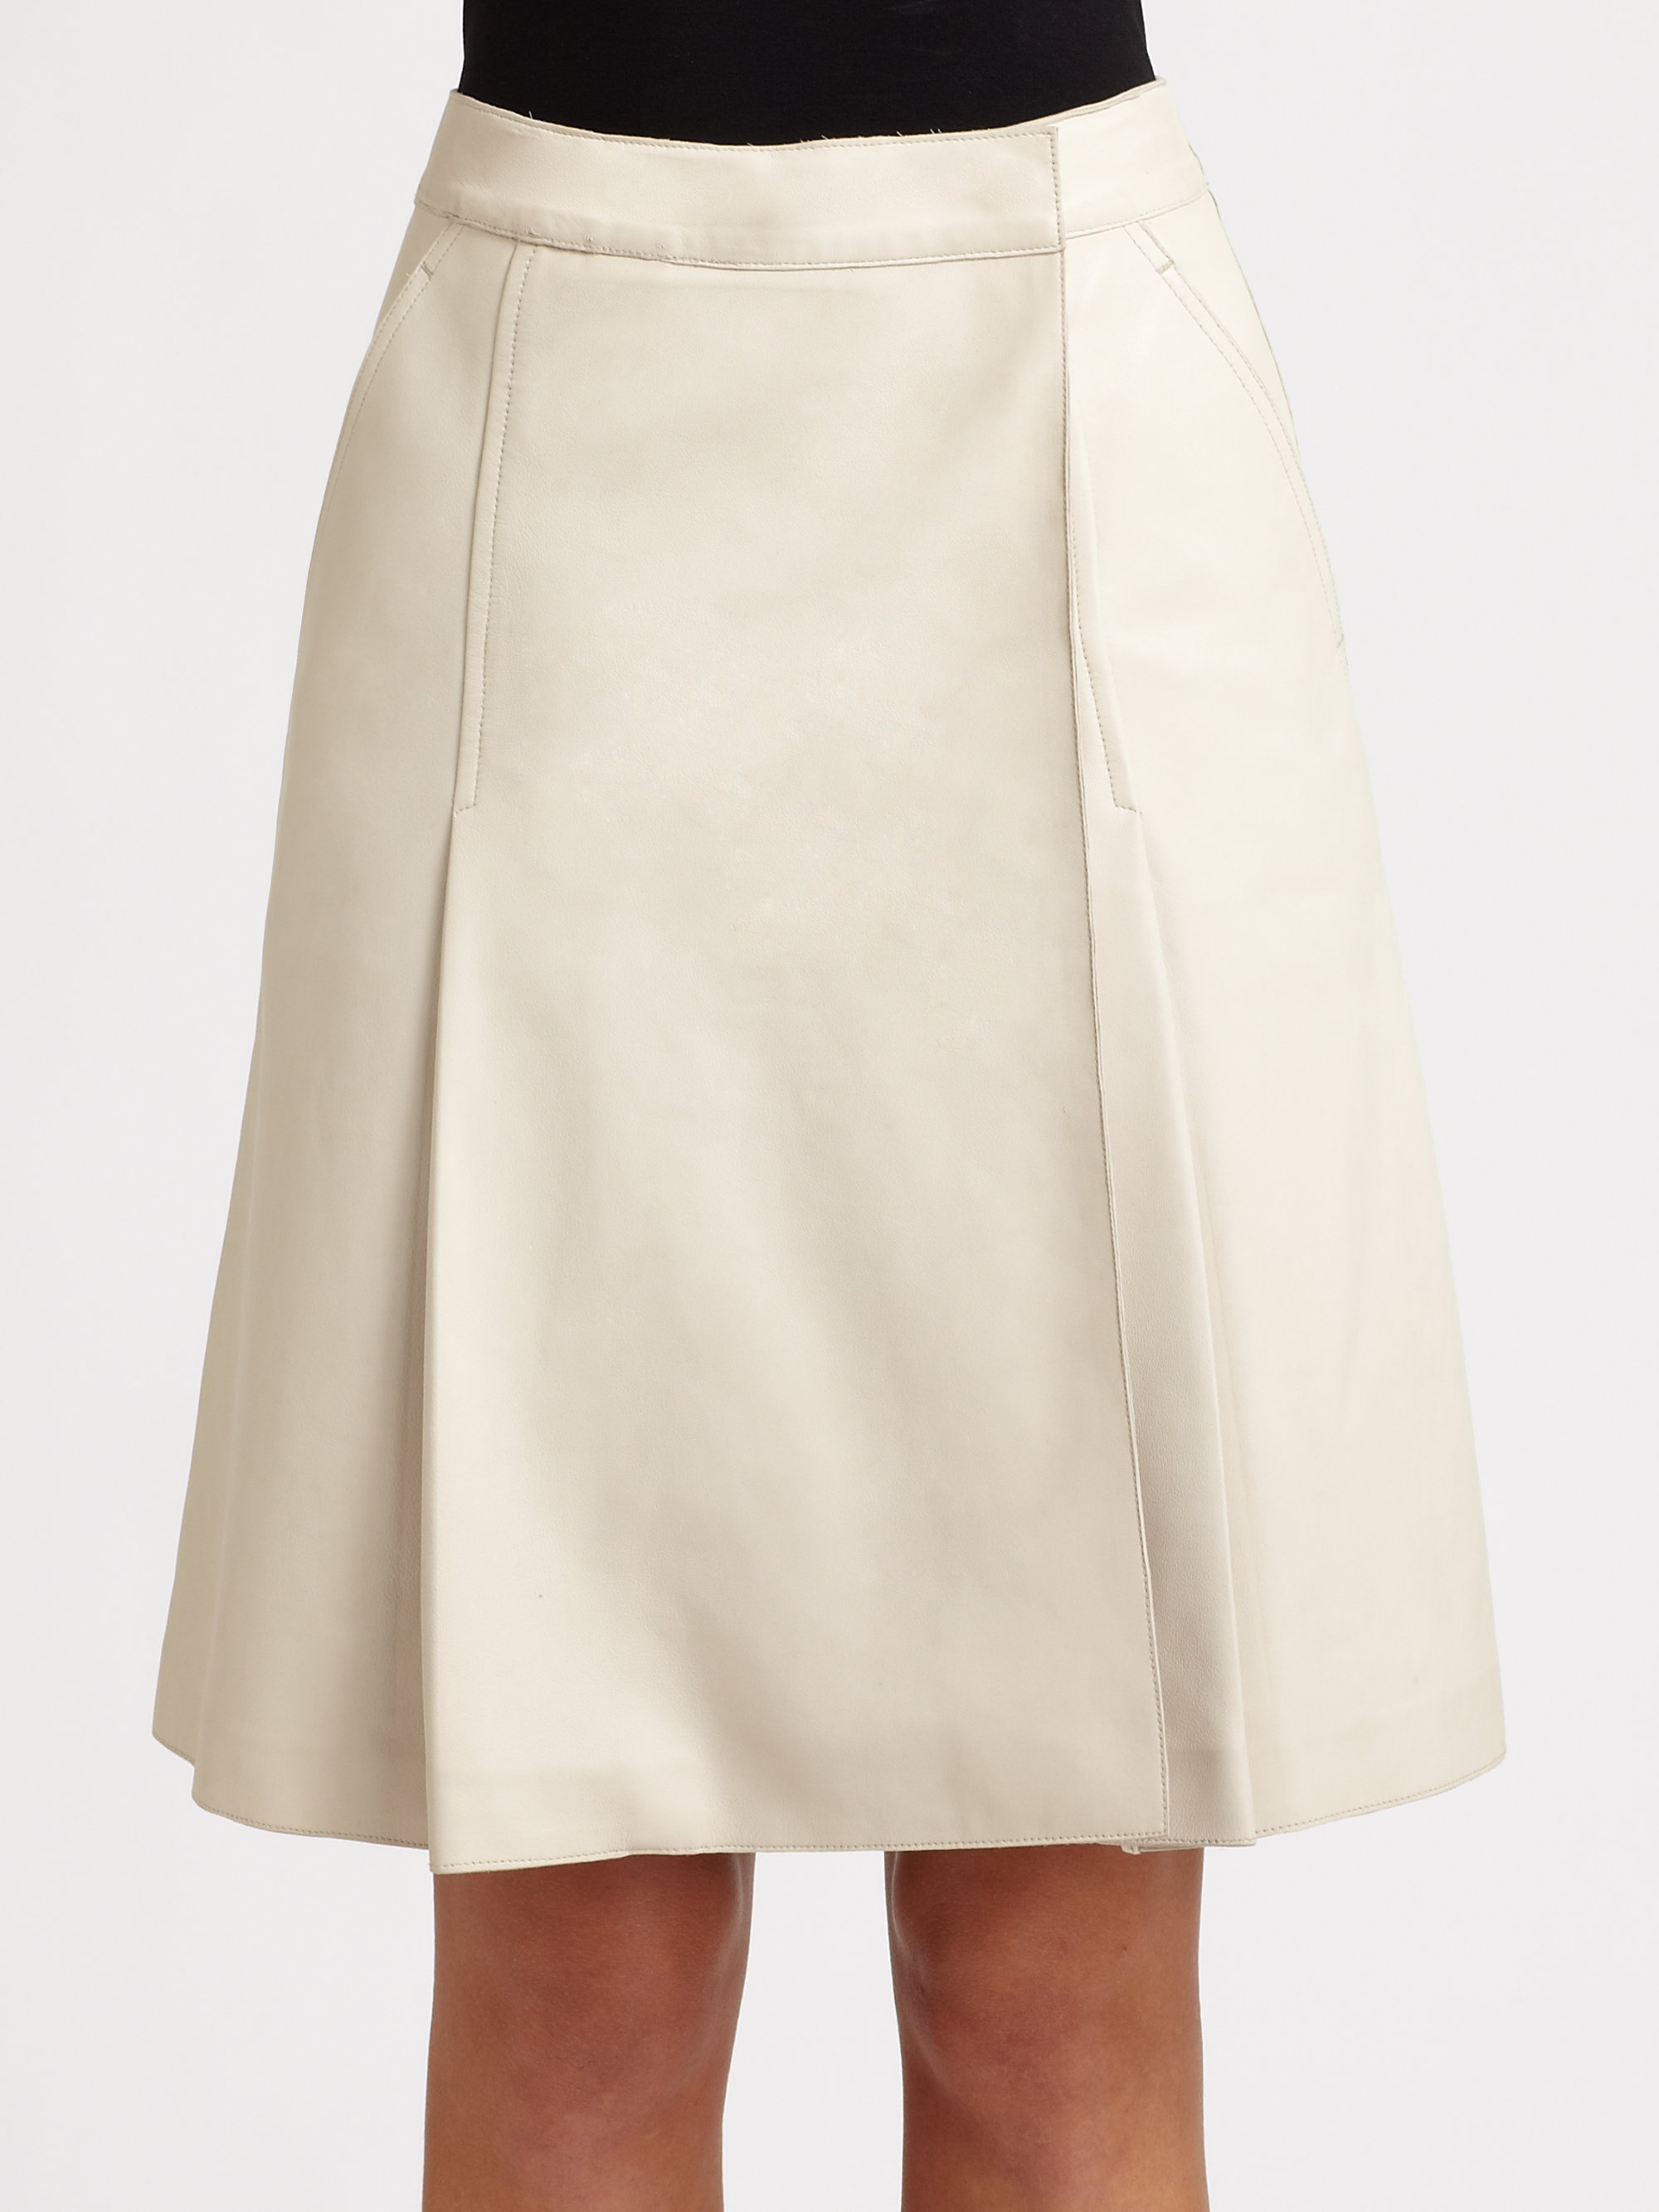 Rochas Leather Skirt in White | Lyst